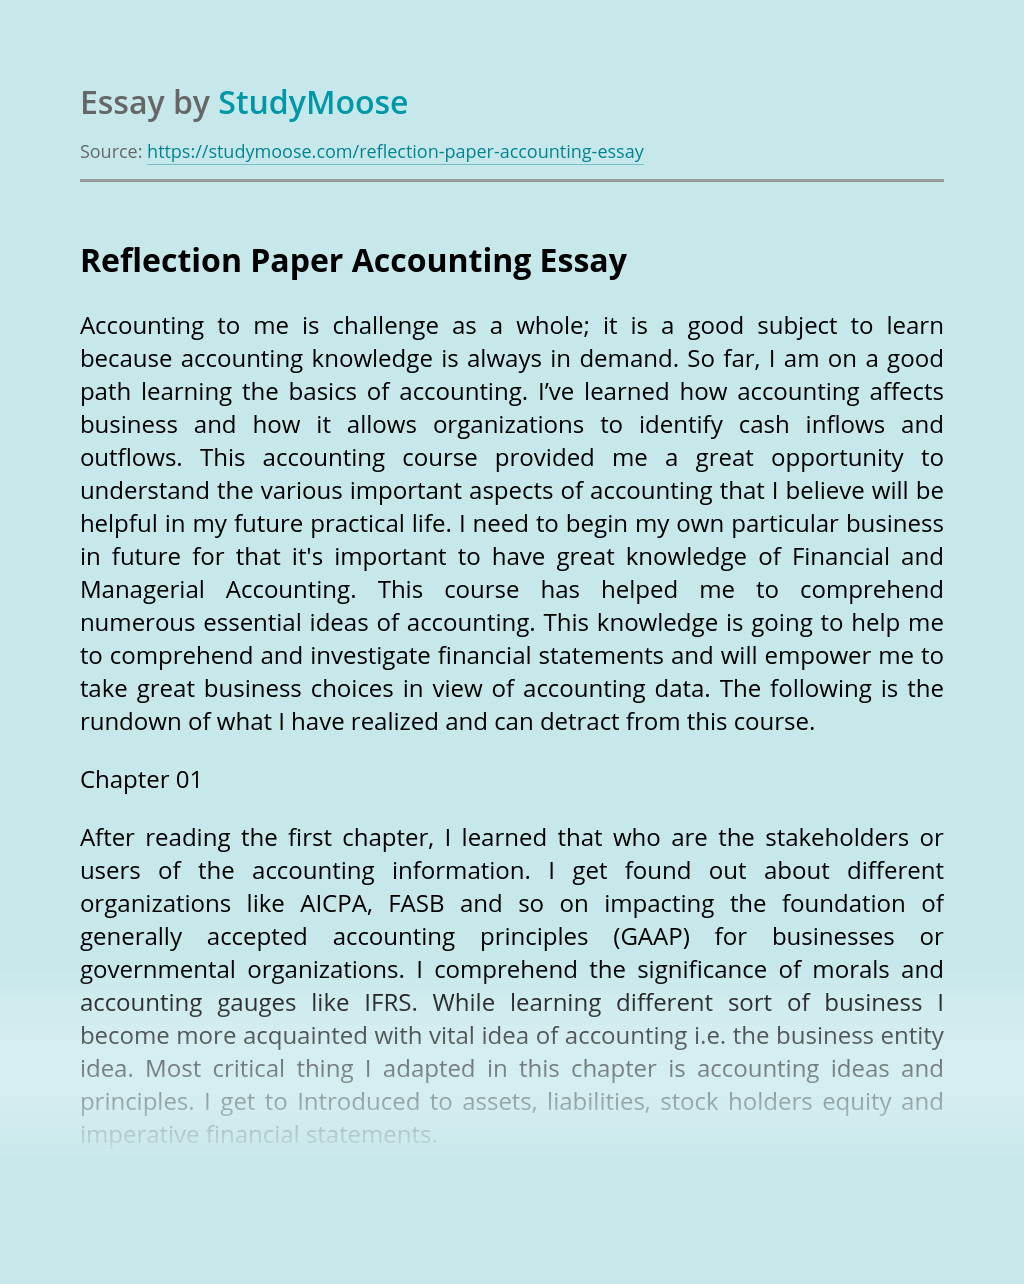 Reflection Paper Accounting